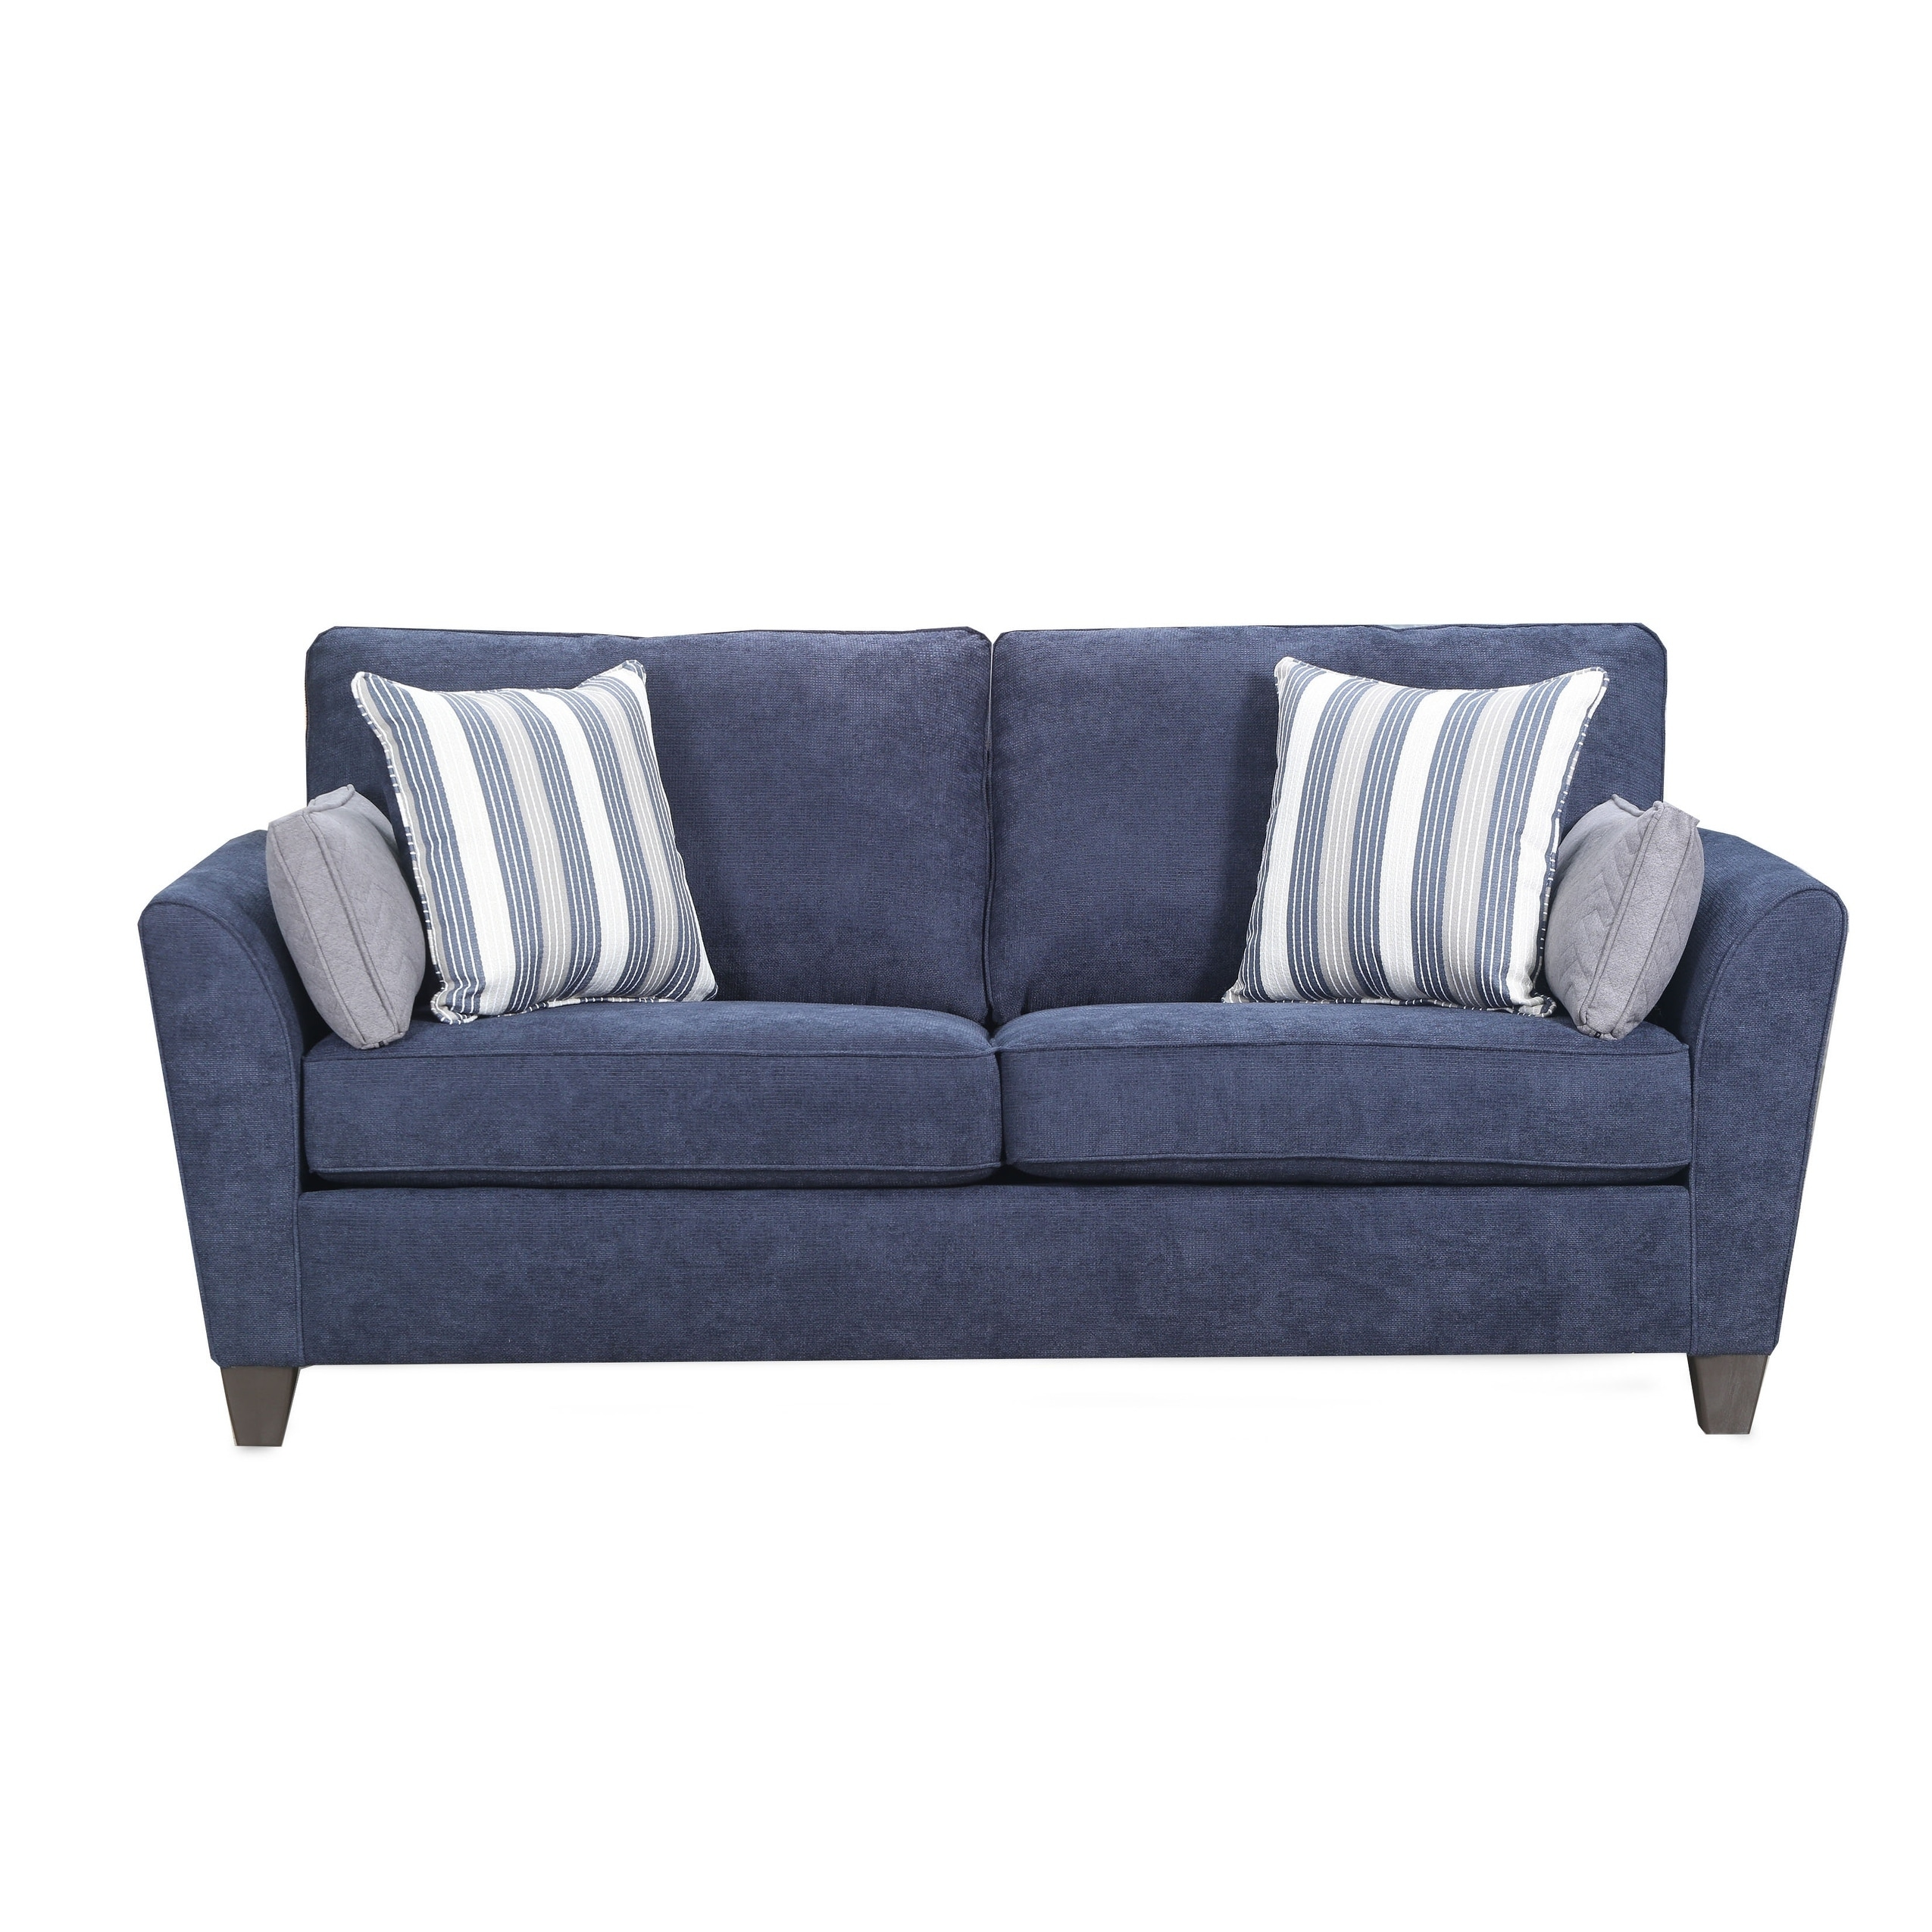 Tilly Fabric Sofa Queen Sleeper Simmons Upholstery Prelude Navy Queen Sleeper